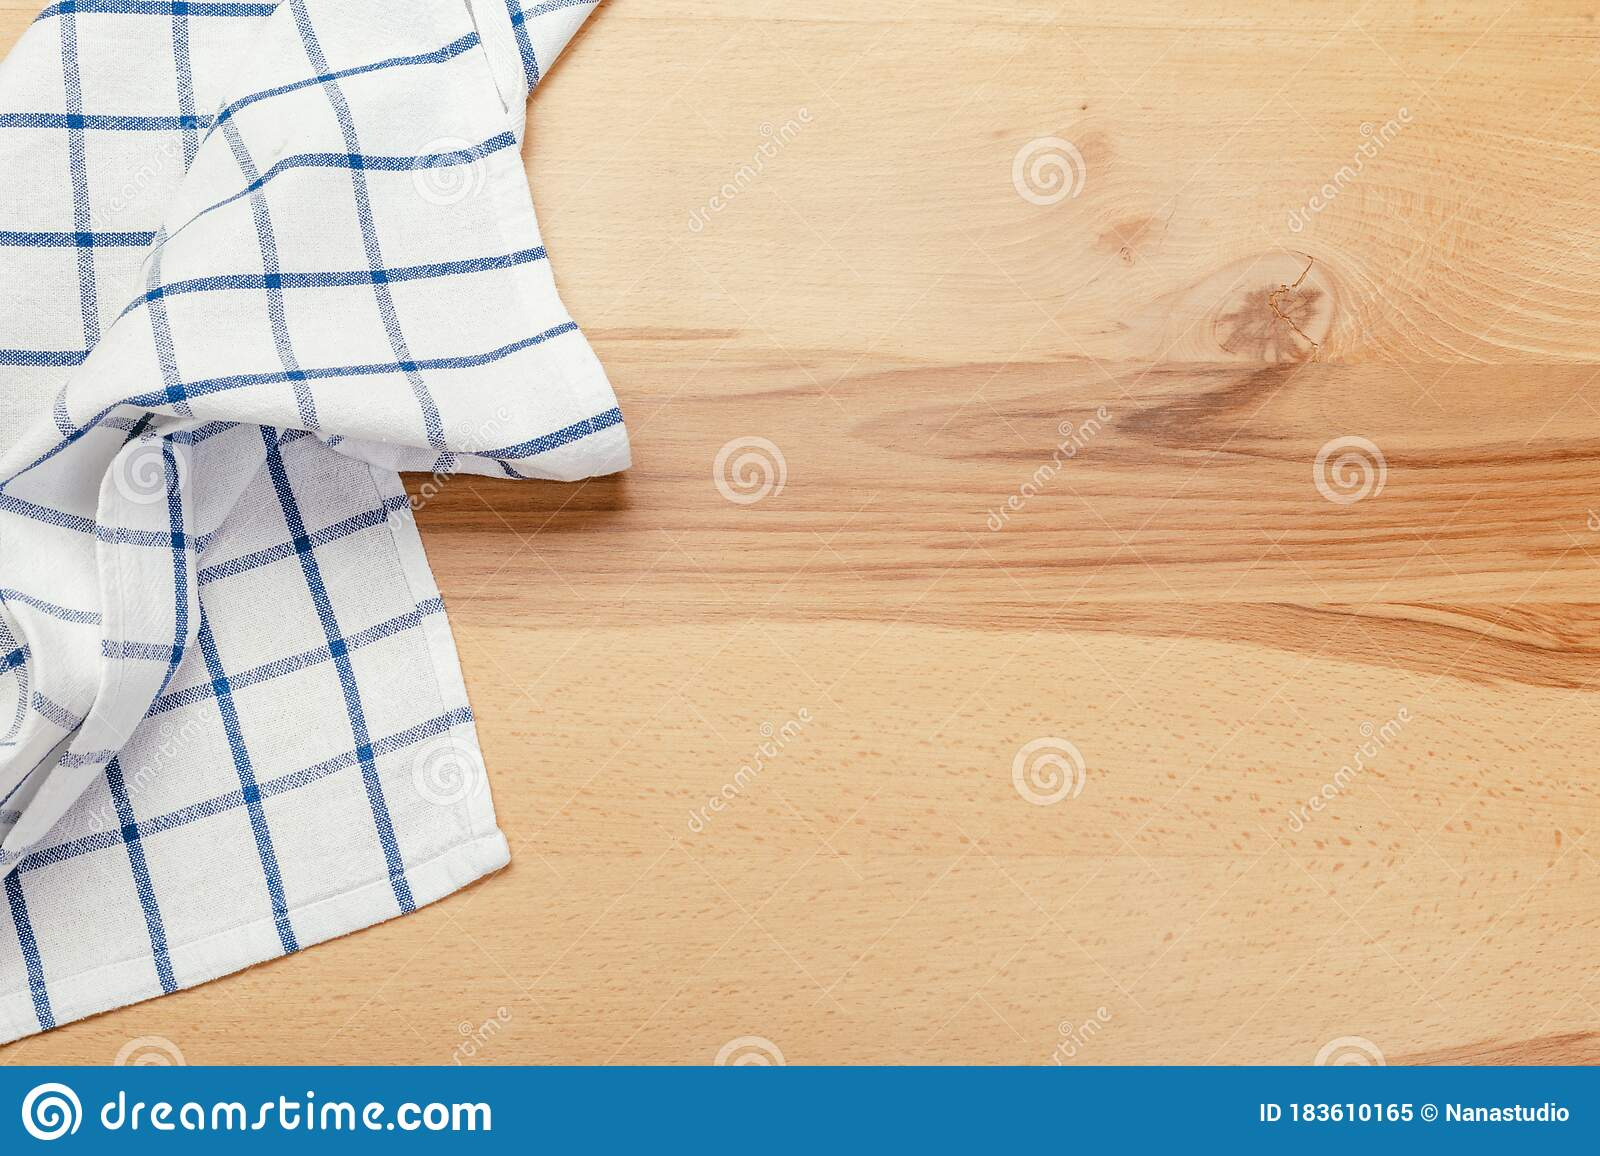 Top View On A Wooden Table With A Linen Kitchen Towel Or Textile Napkin Stock Image Image Of Menu Backdrop 183610165